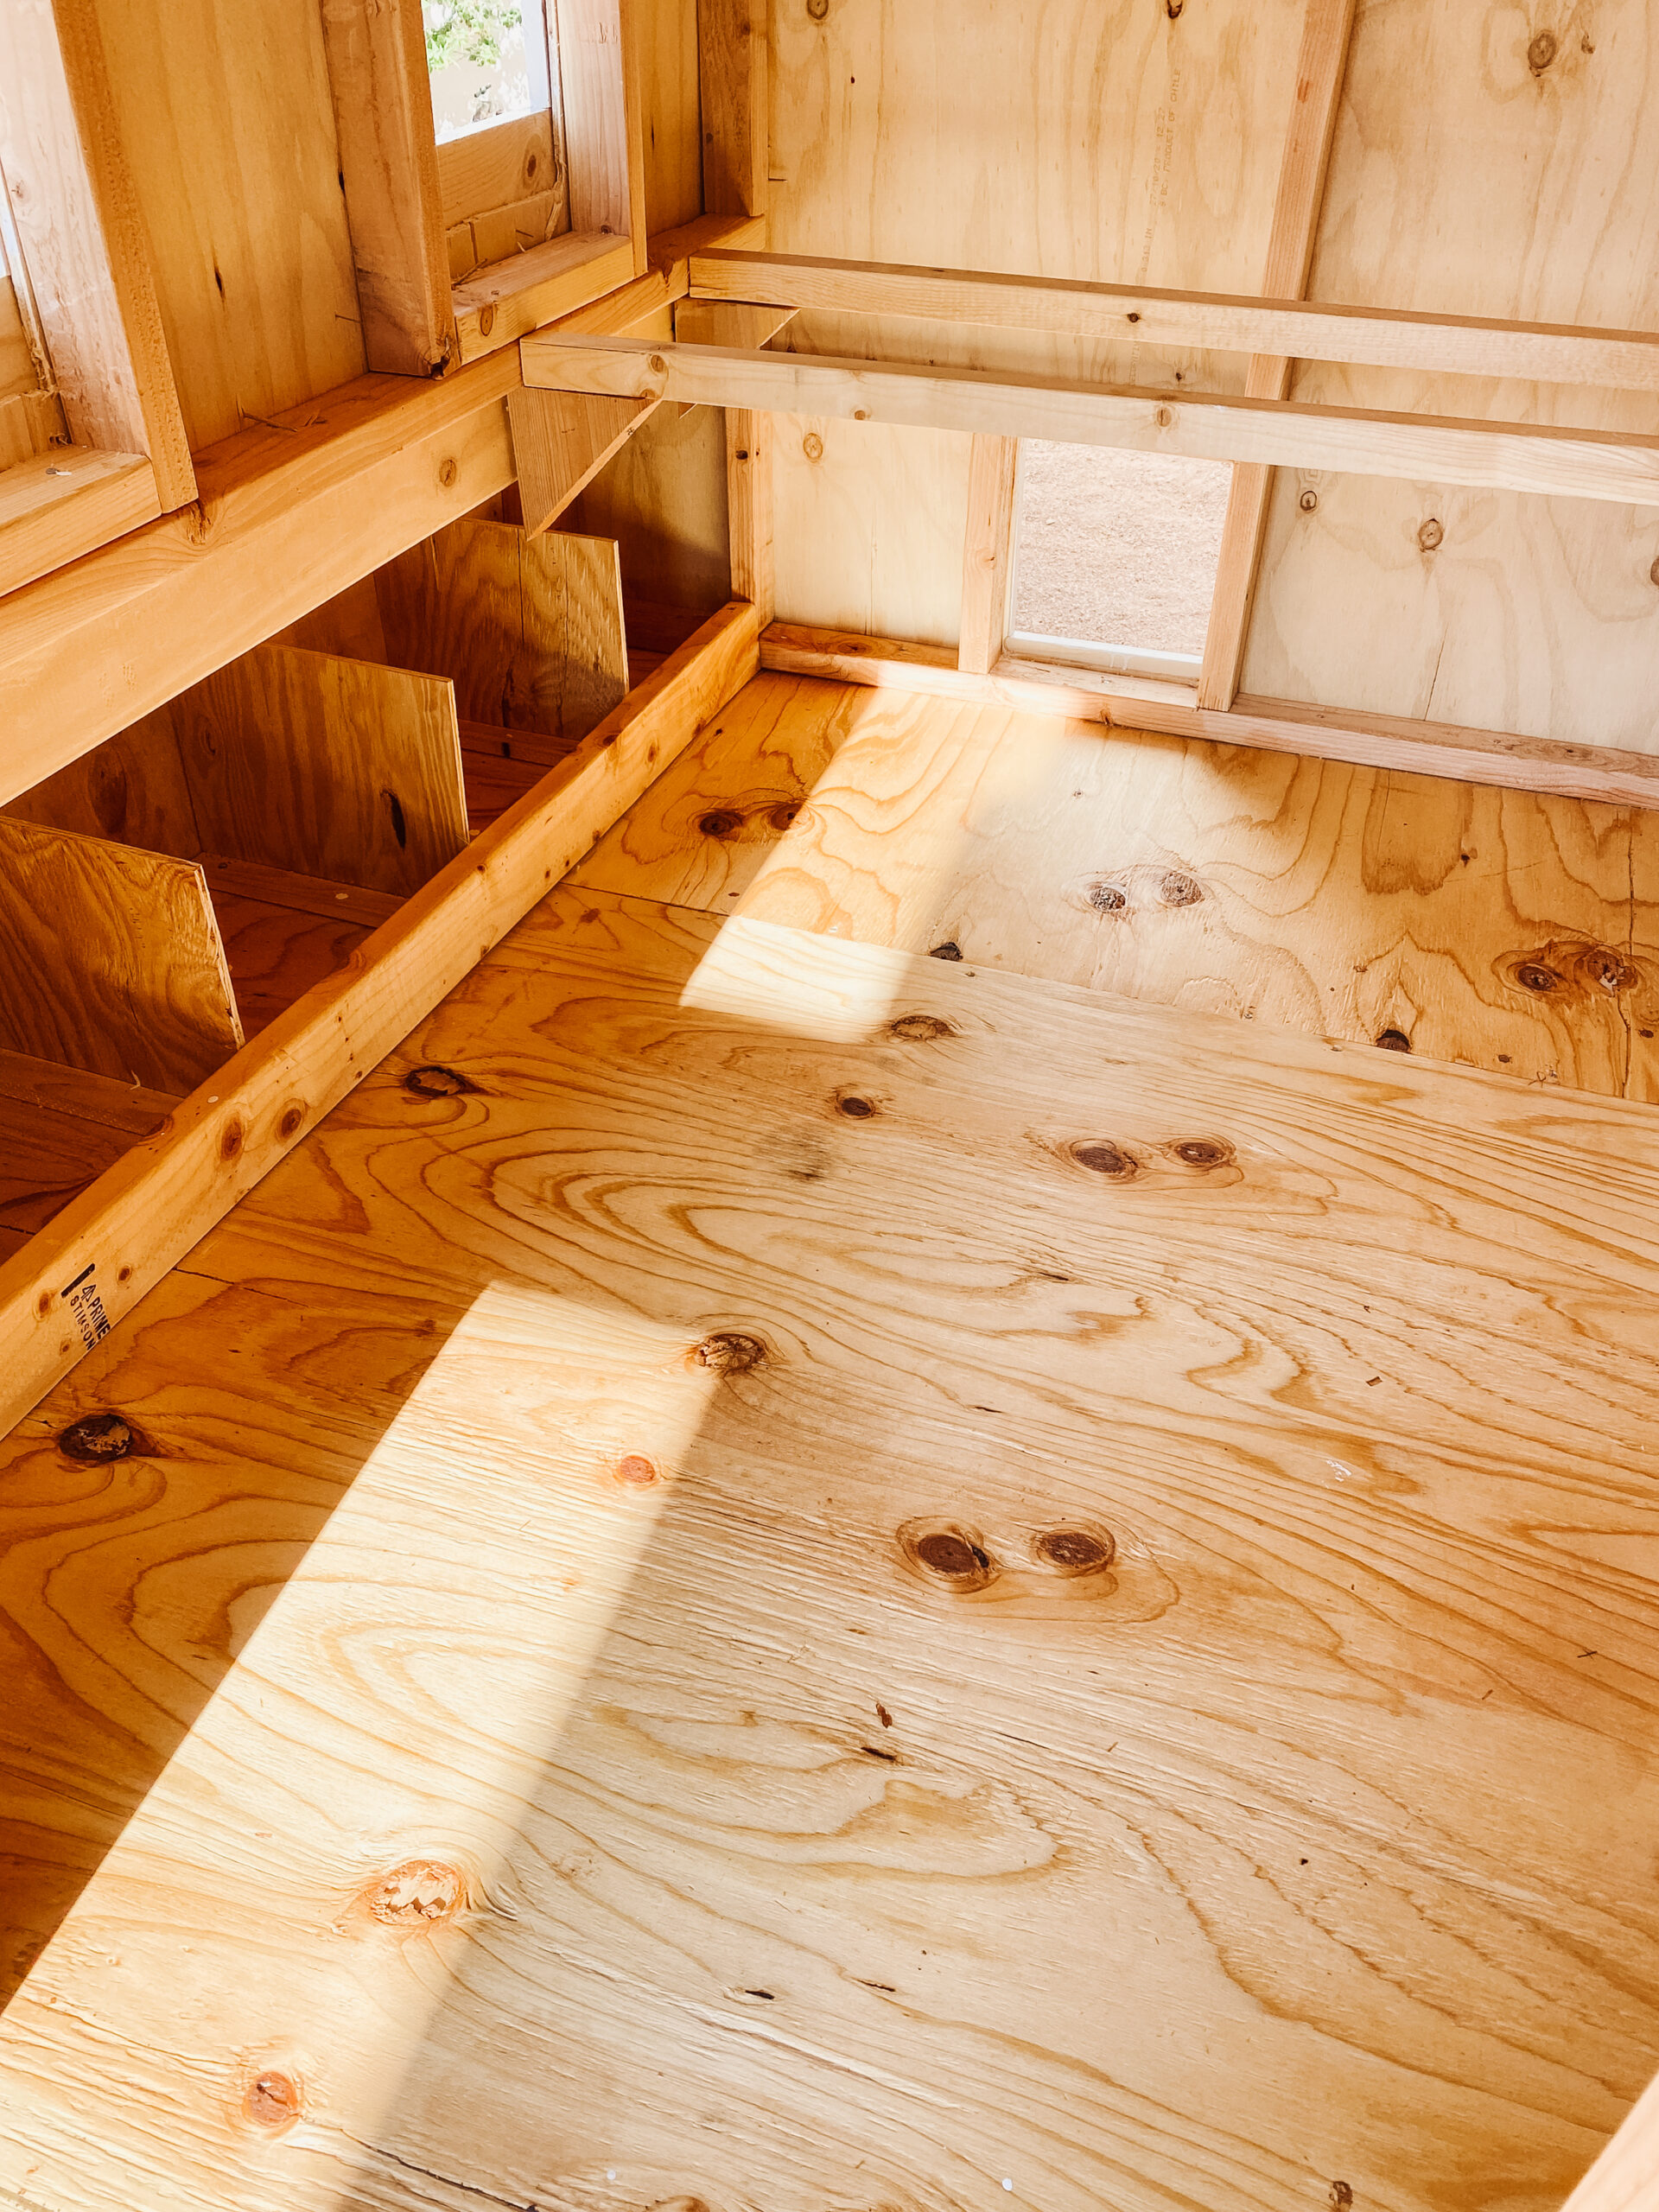 treating the coop floor with tung oil #thelovedesignedlife #nontoxic #organicchickns #farmfresheggs